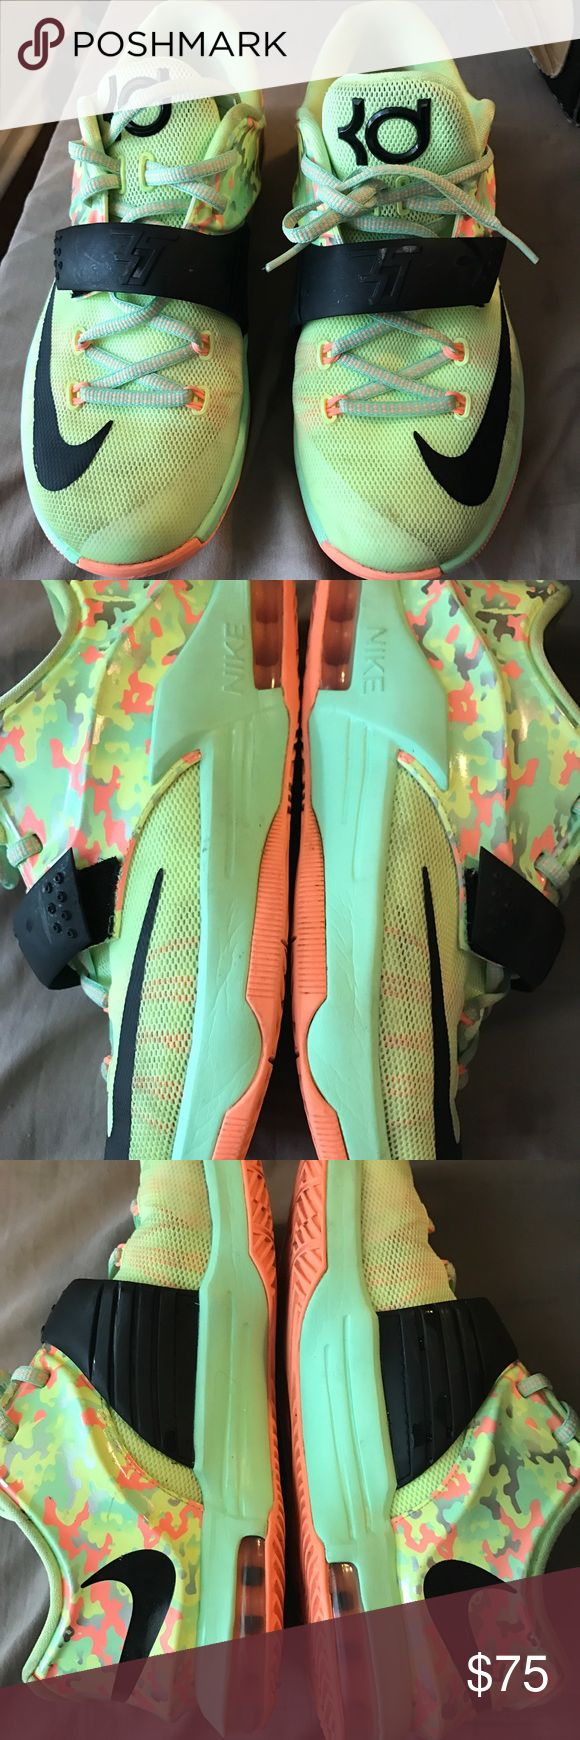 """Youth size 5.5  KD sneakers Youth KD """"easters"""" worn but in near perfect condition Nike Shoes Sneakers"""